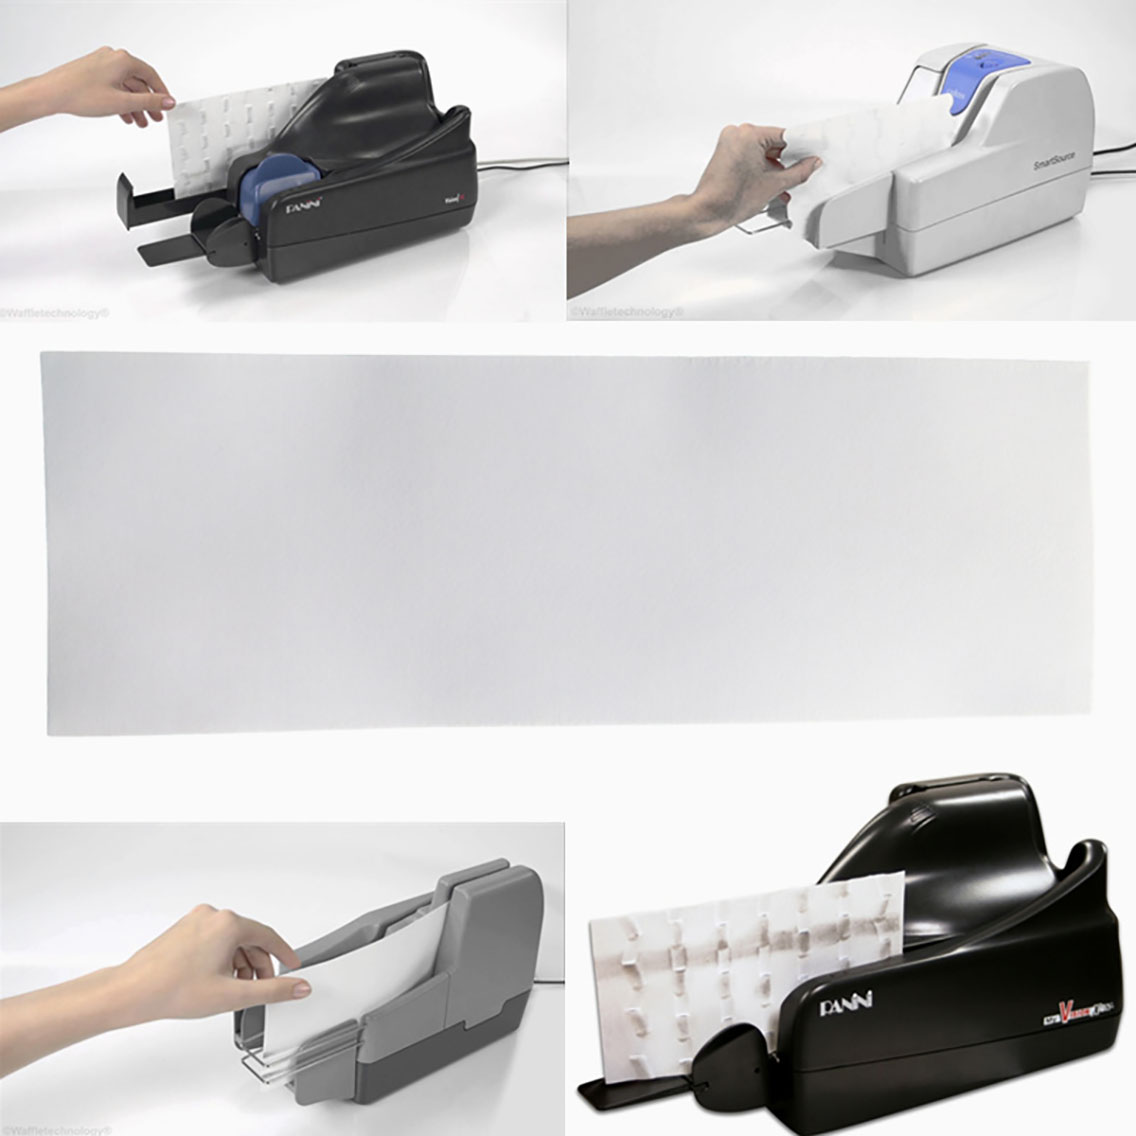 Cleanmo non woven fabric check reader cleaning card manufacturer for Digital Check TellerScan-6